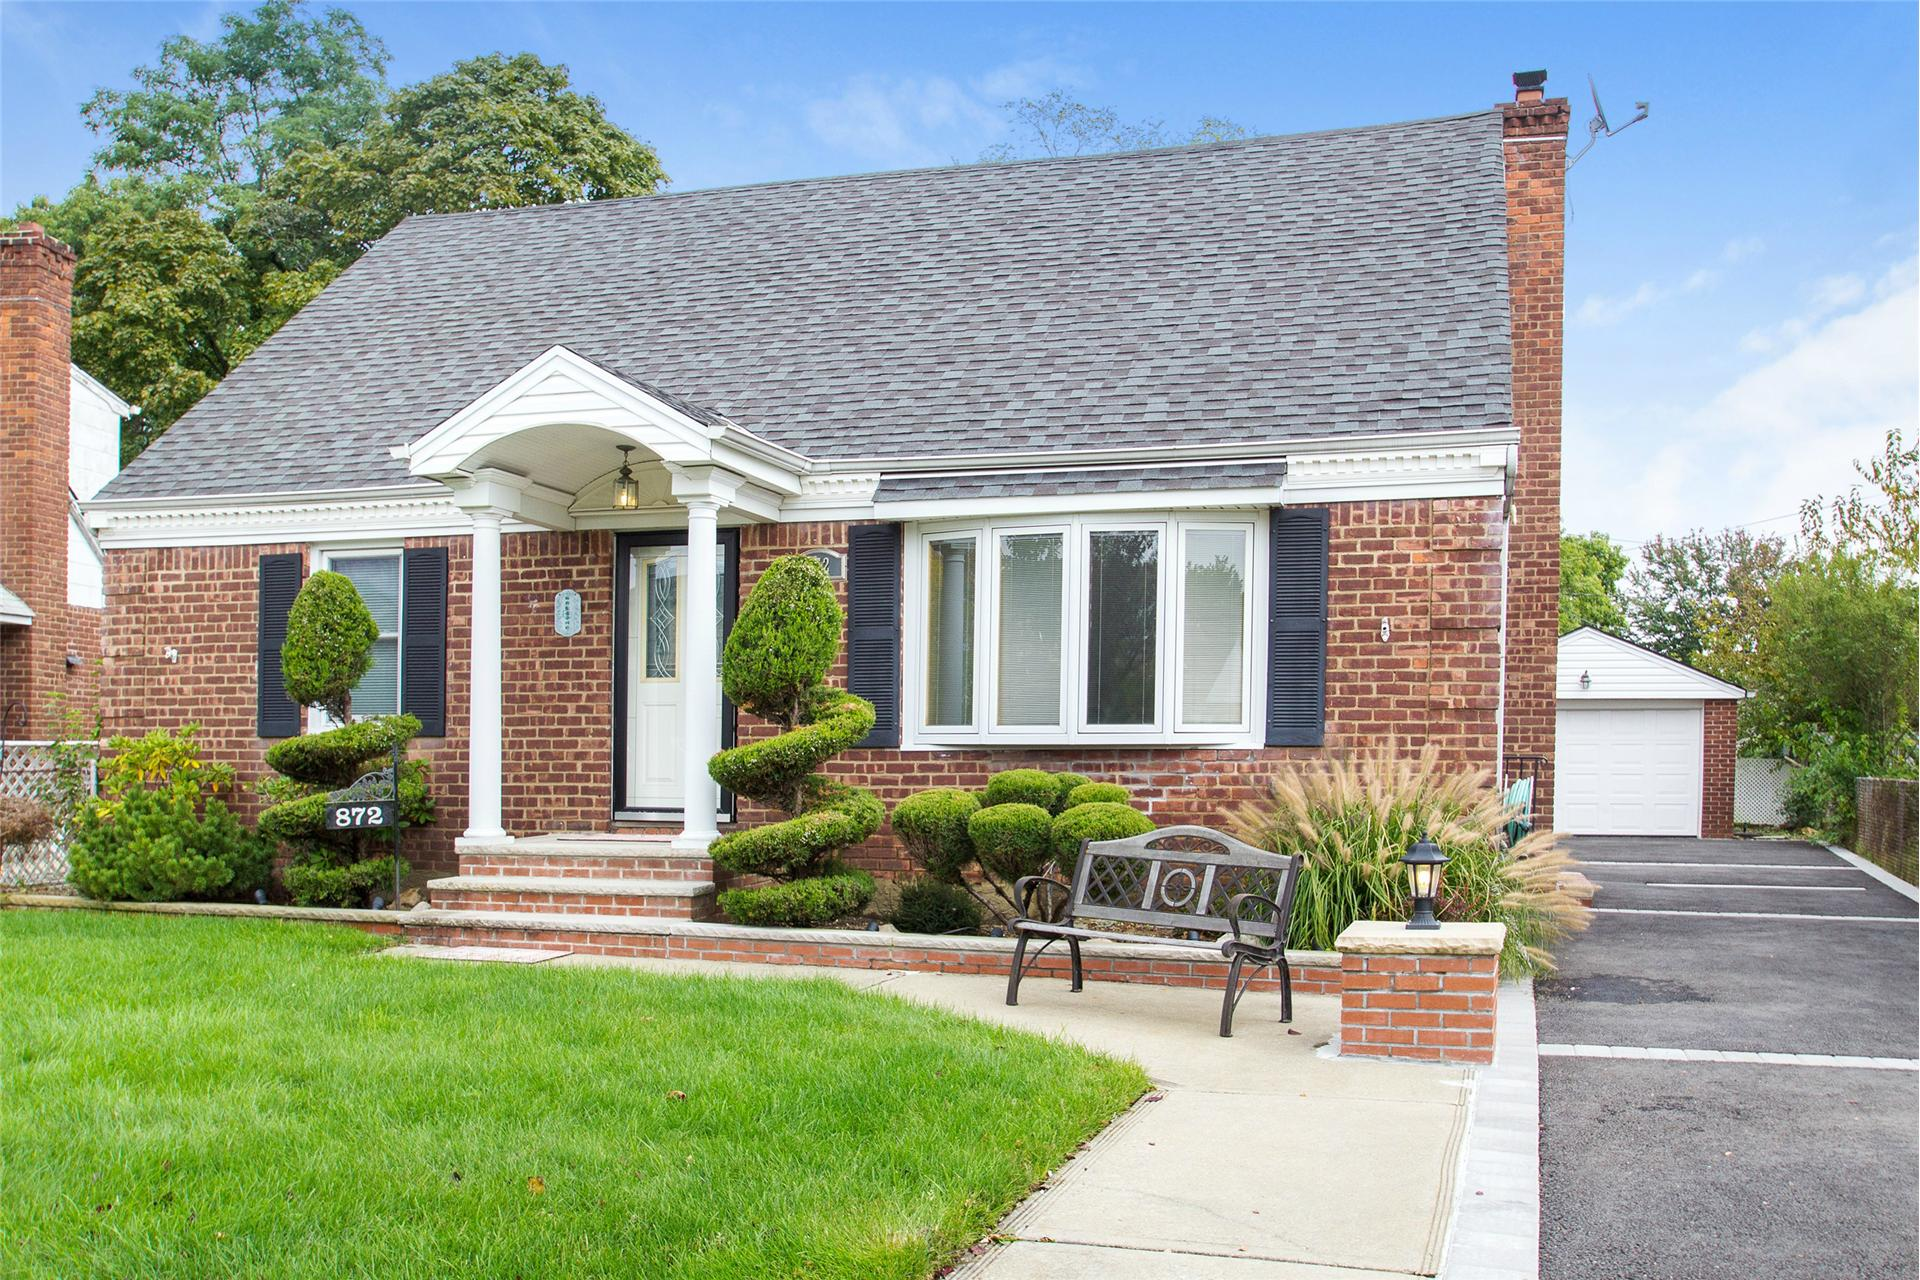 Single Family for Sale at Franklin Square 872 Center Dr Franklin Square, New York 11010 United States